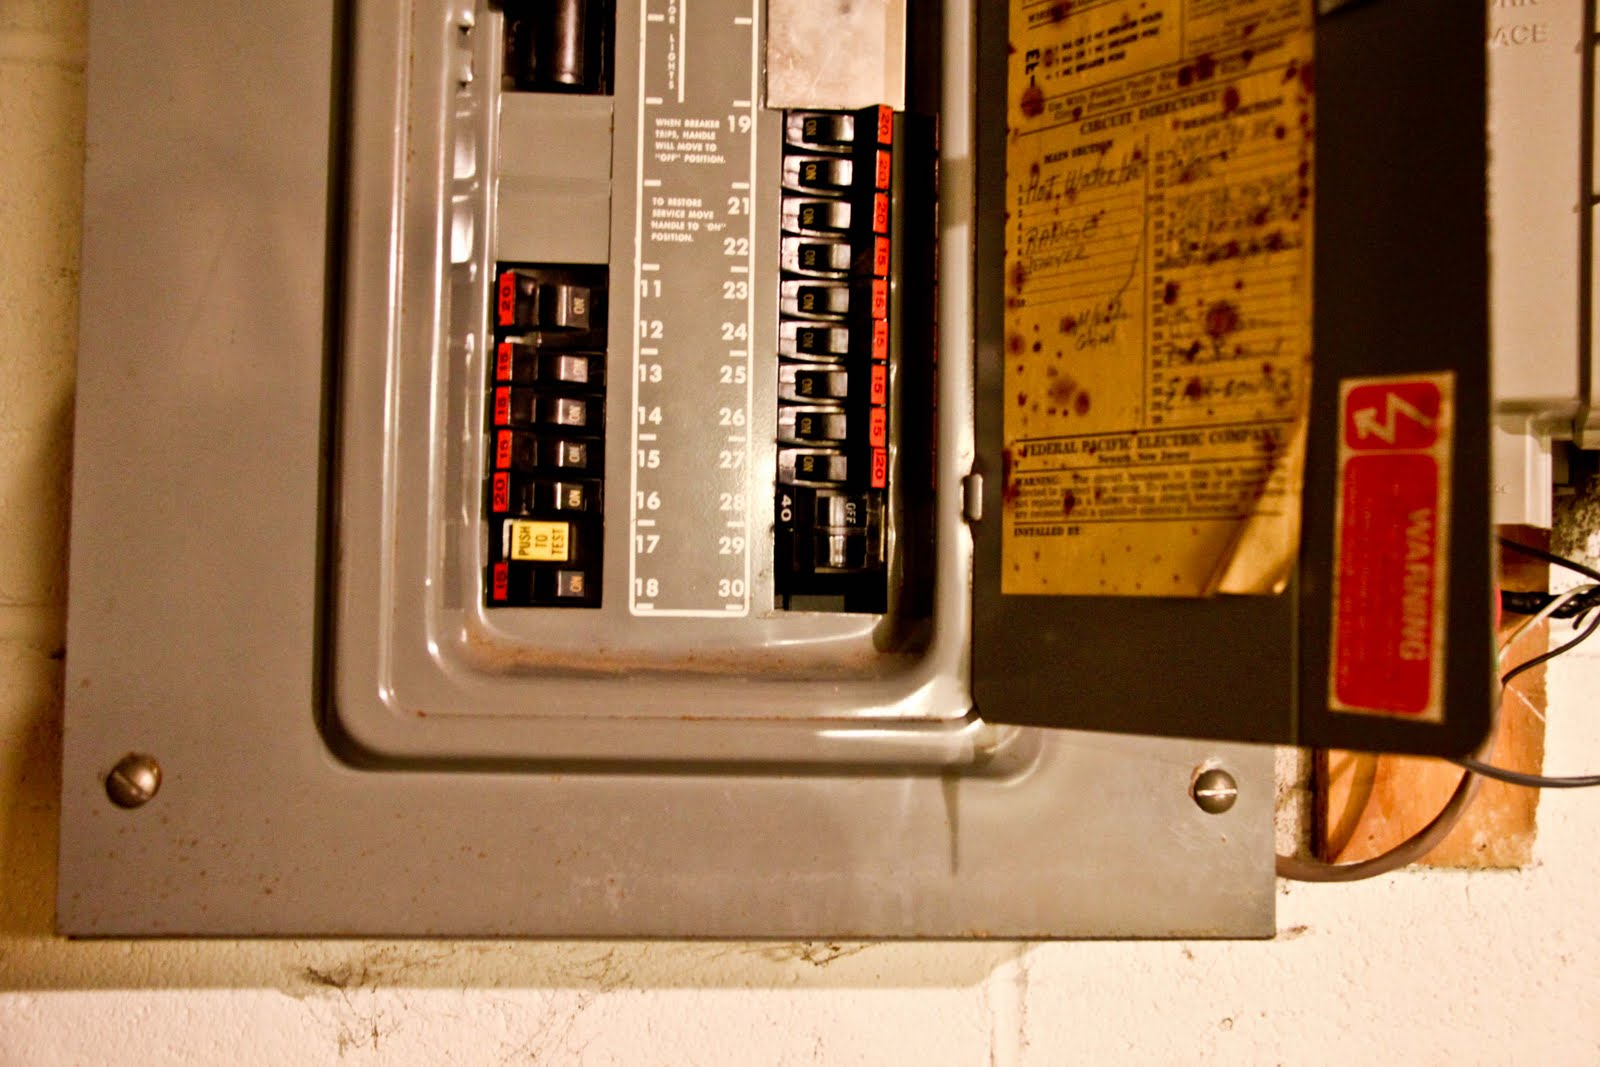 replacing fuse on central ac unit work space how to replace a fuse box in a house replacing fuse on central ac unit